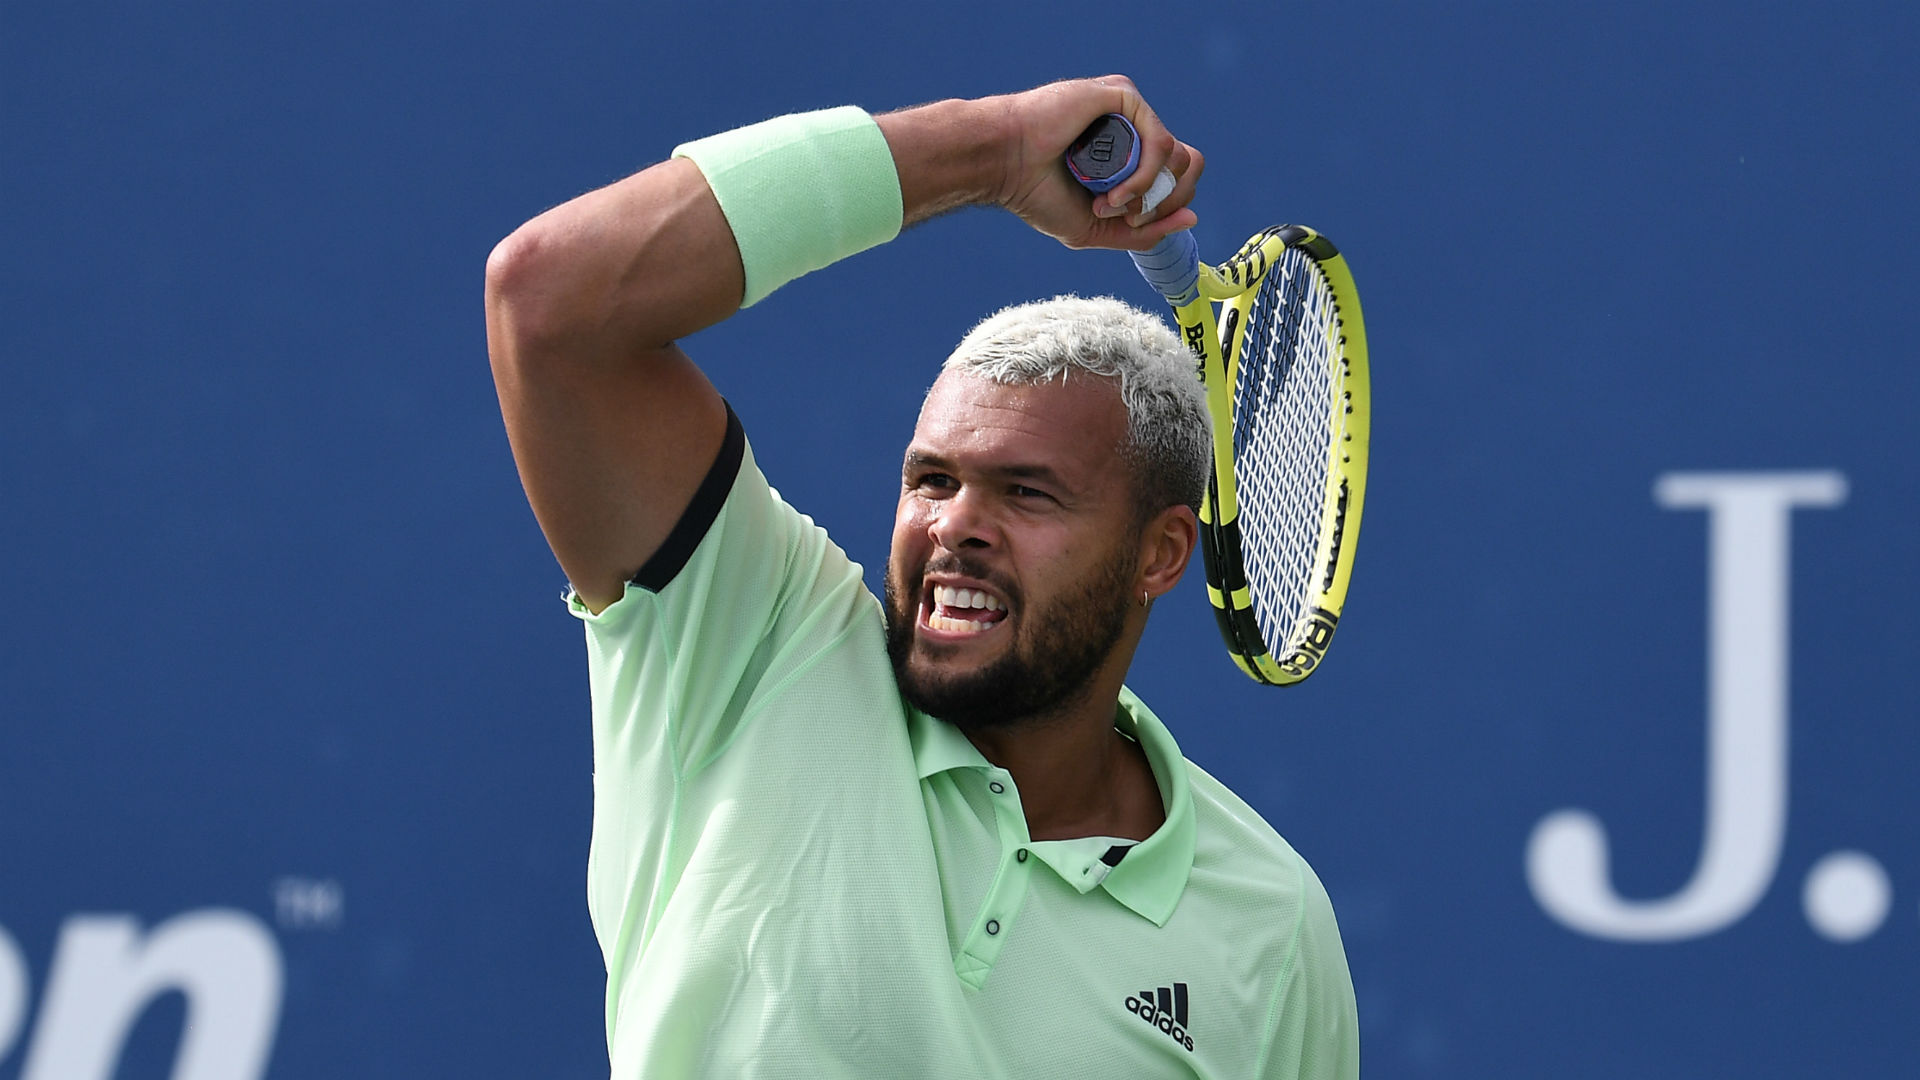 Tsonga back to winning ways in Metz, Donskoy sets up Medvedev date